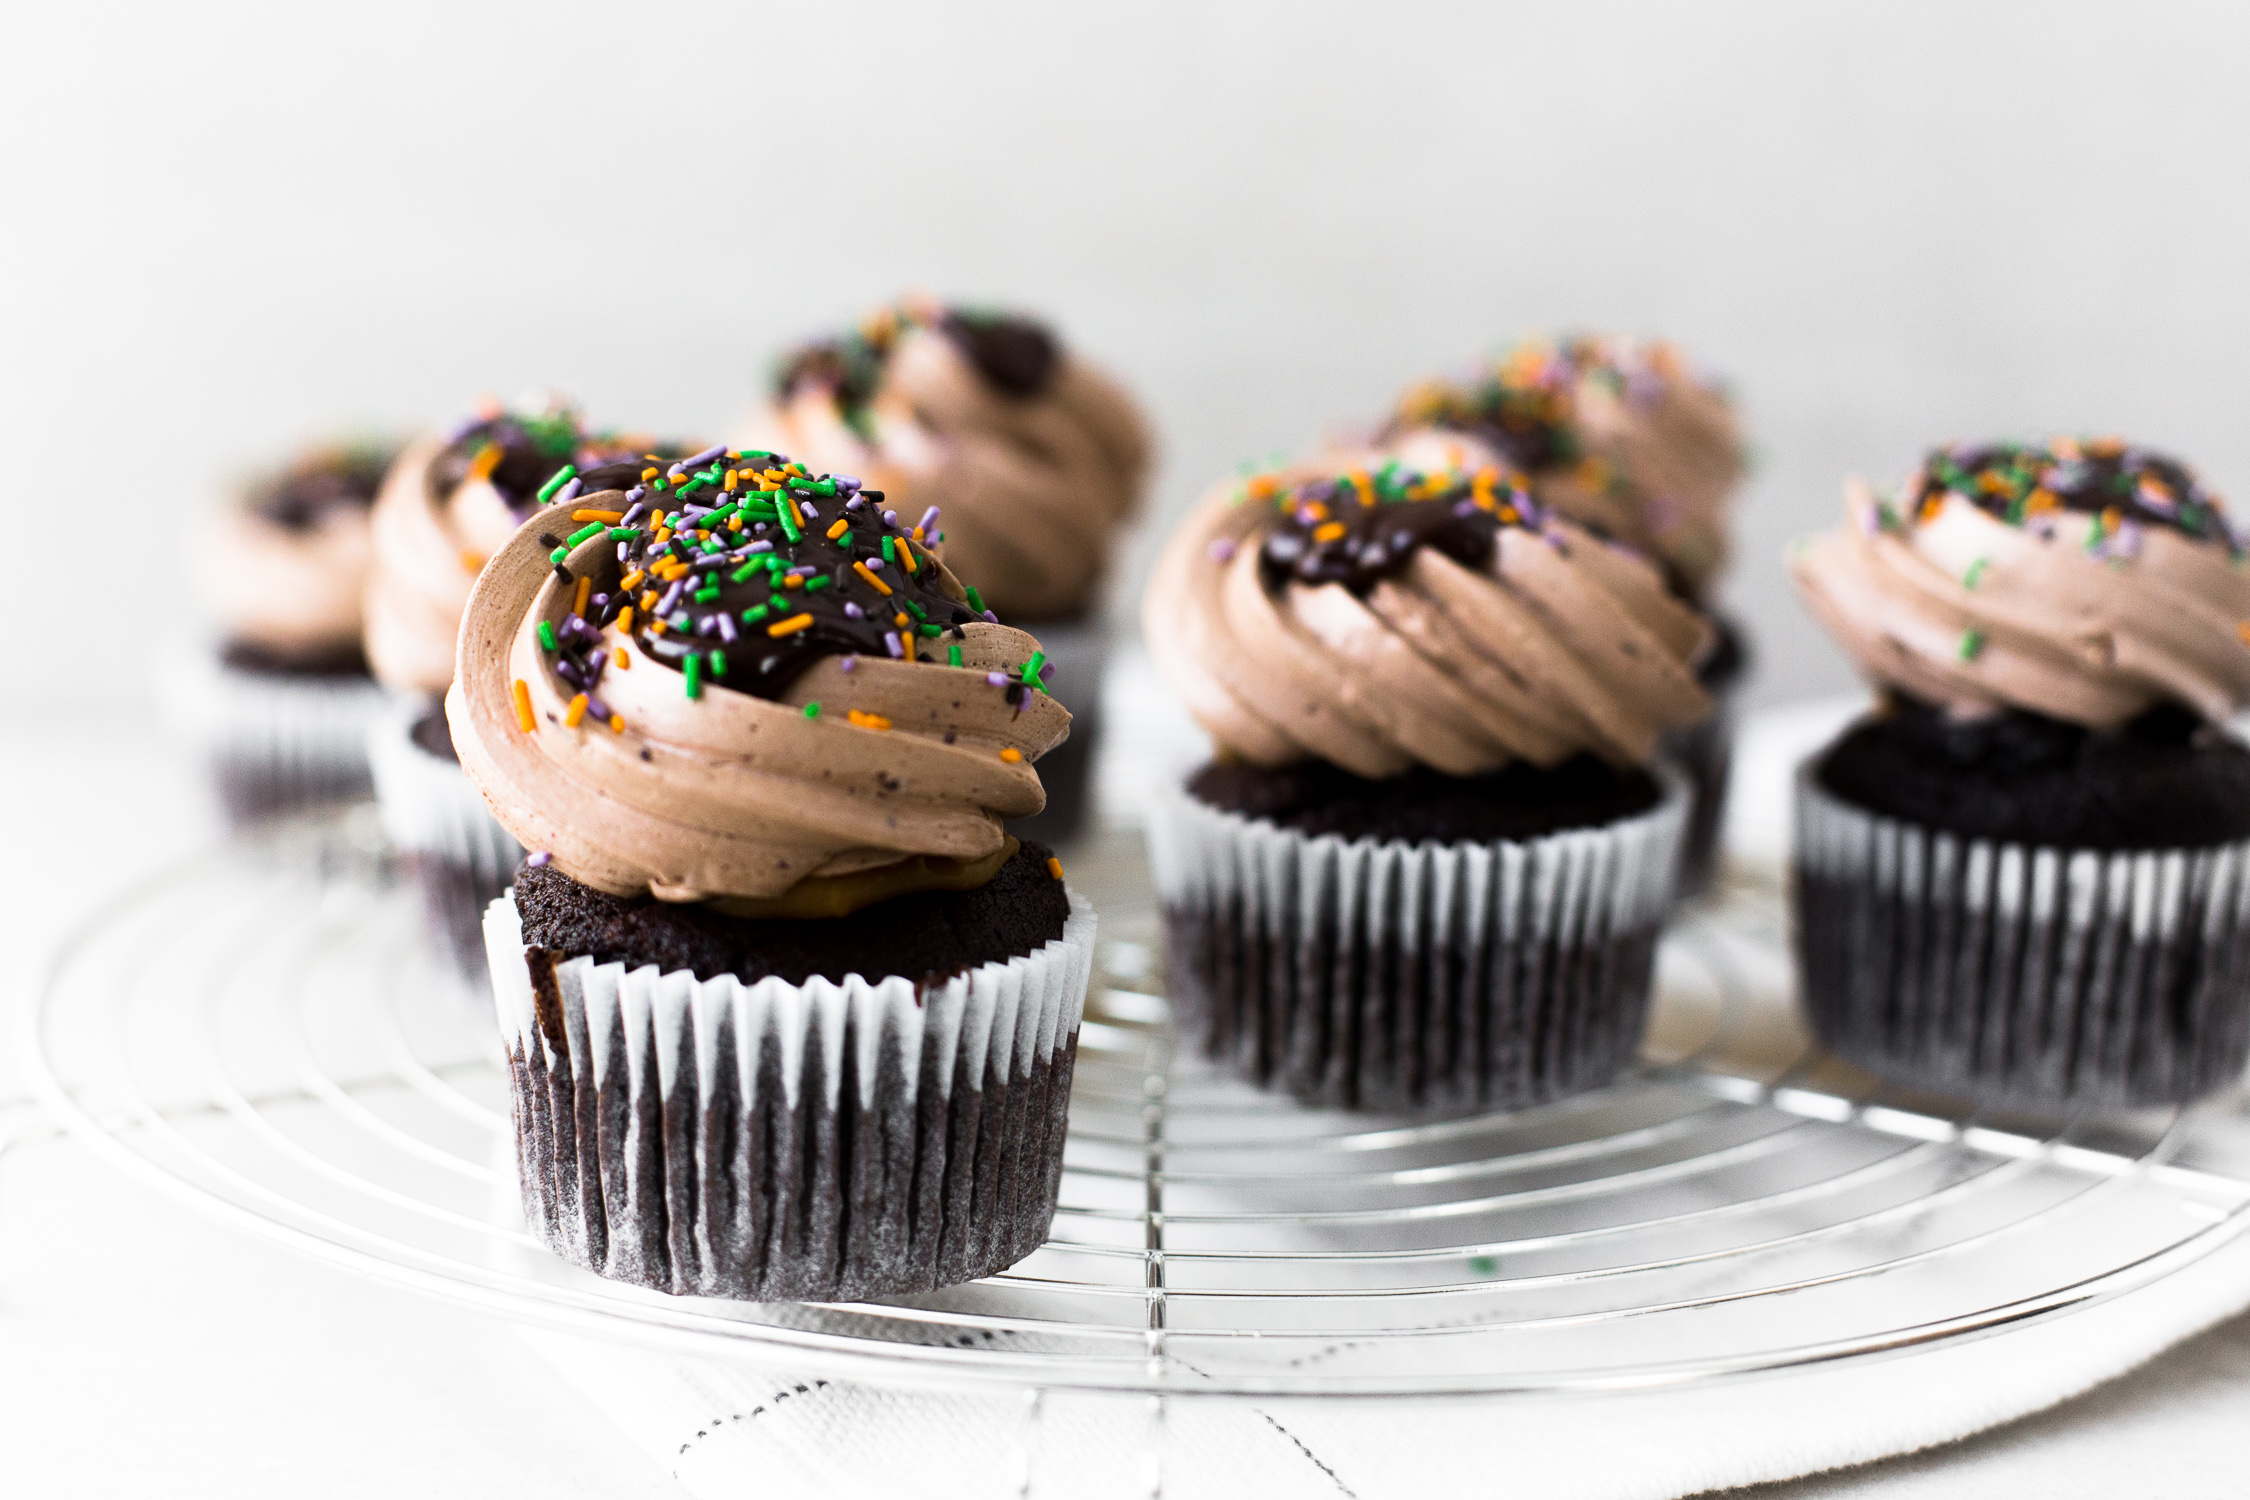 The Ultimate Vegan Chocolate Cupcakes. Tender Chocolate Cake filled with Chocolate Ganache and loaded with Vegan Chocolate Buttercream Frosting. #vegan #chocolate #cupcakes #cake #baking #dairyfree #ganache #buttercream #veganbaking #plantbased